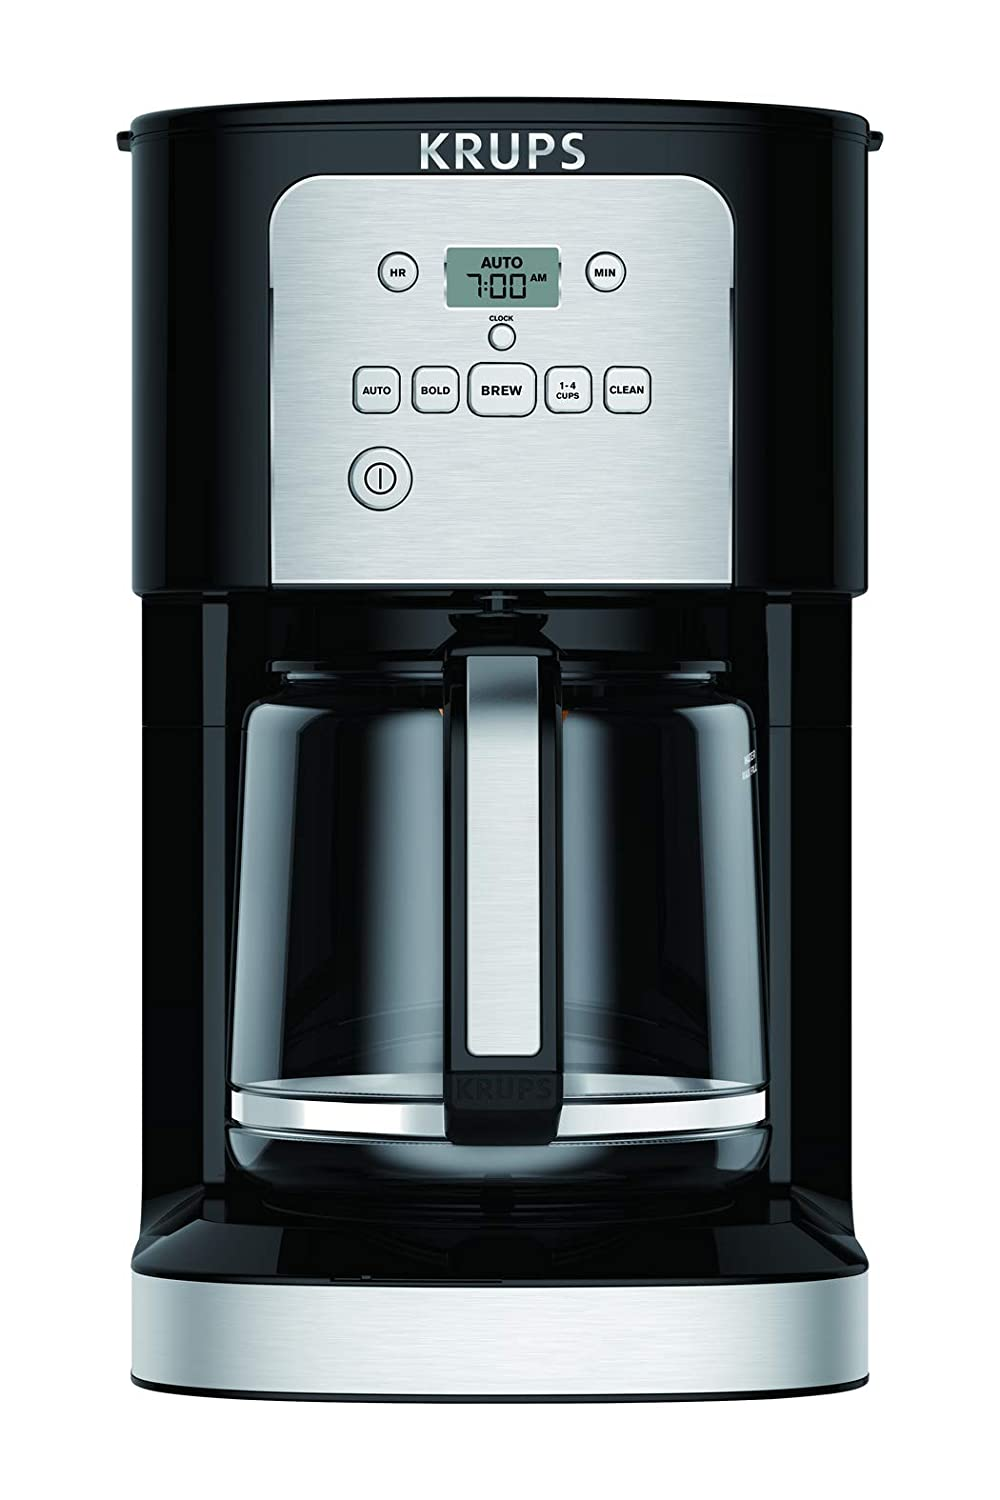 KRUPS EC321050 Thermobrew Programmable Coffee Maker, 12-Cup, Black